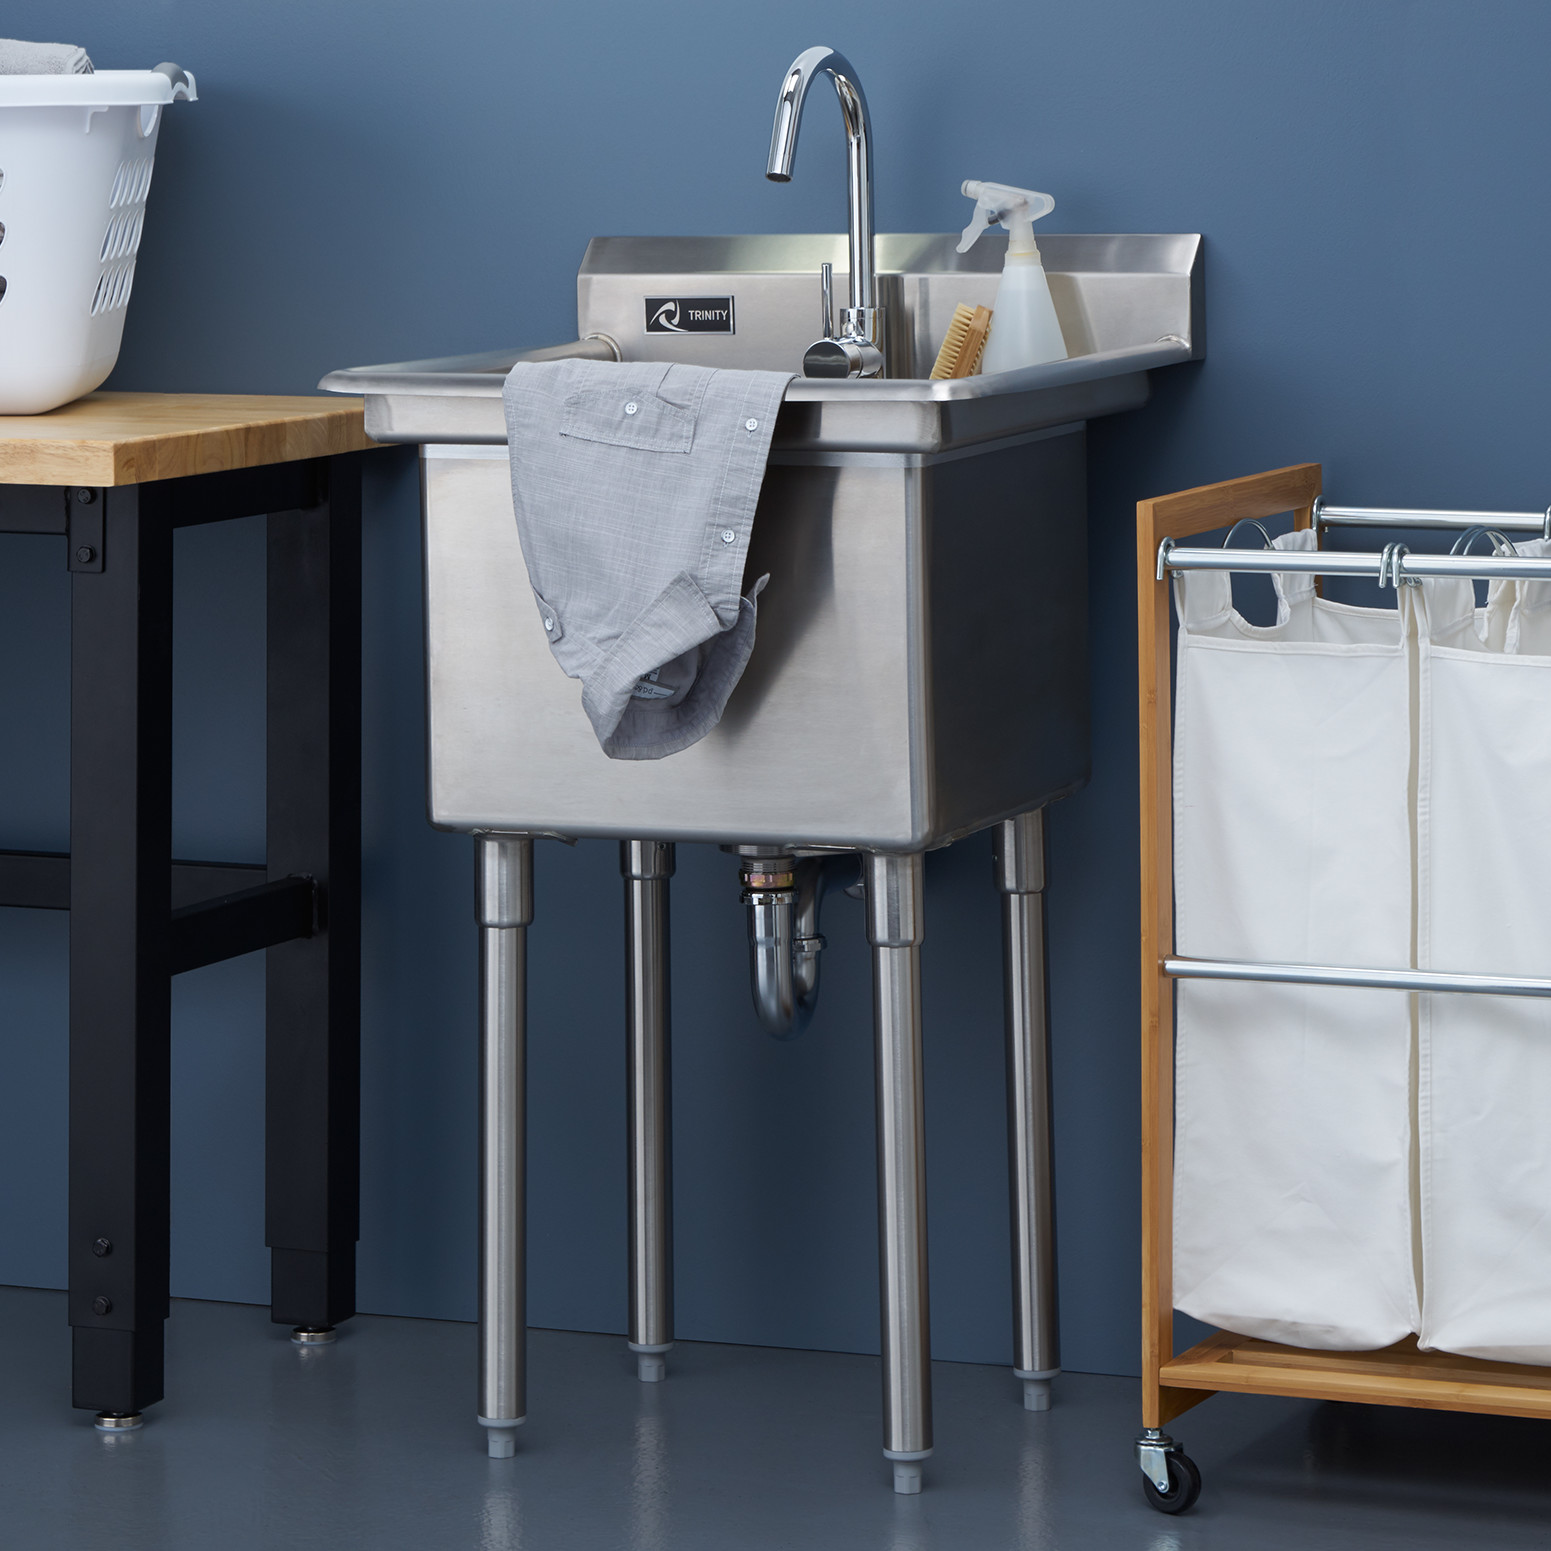 TRINITY Stainless Steel Utility Sink, add this to your laundry room ...